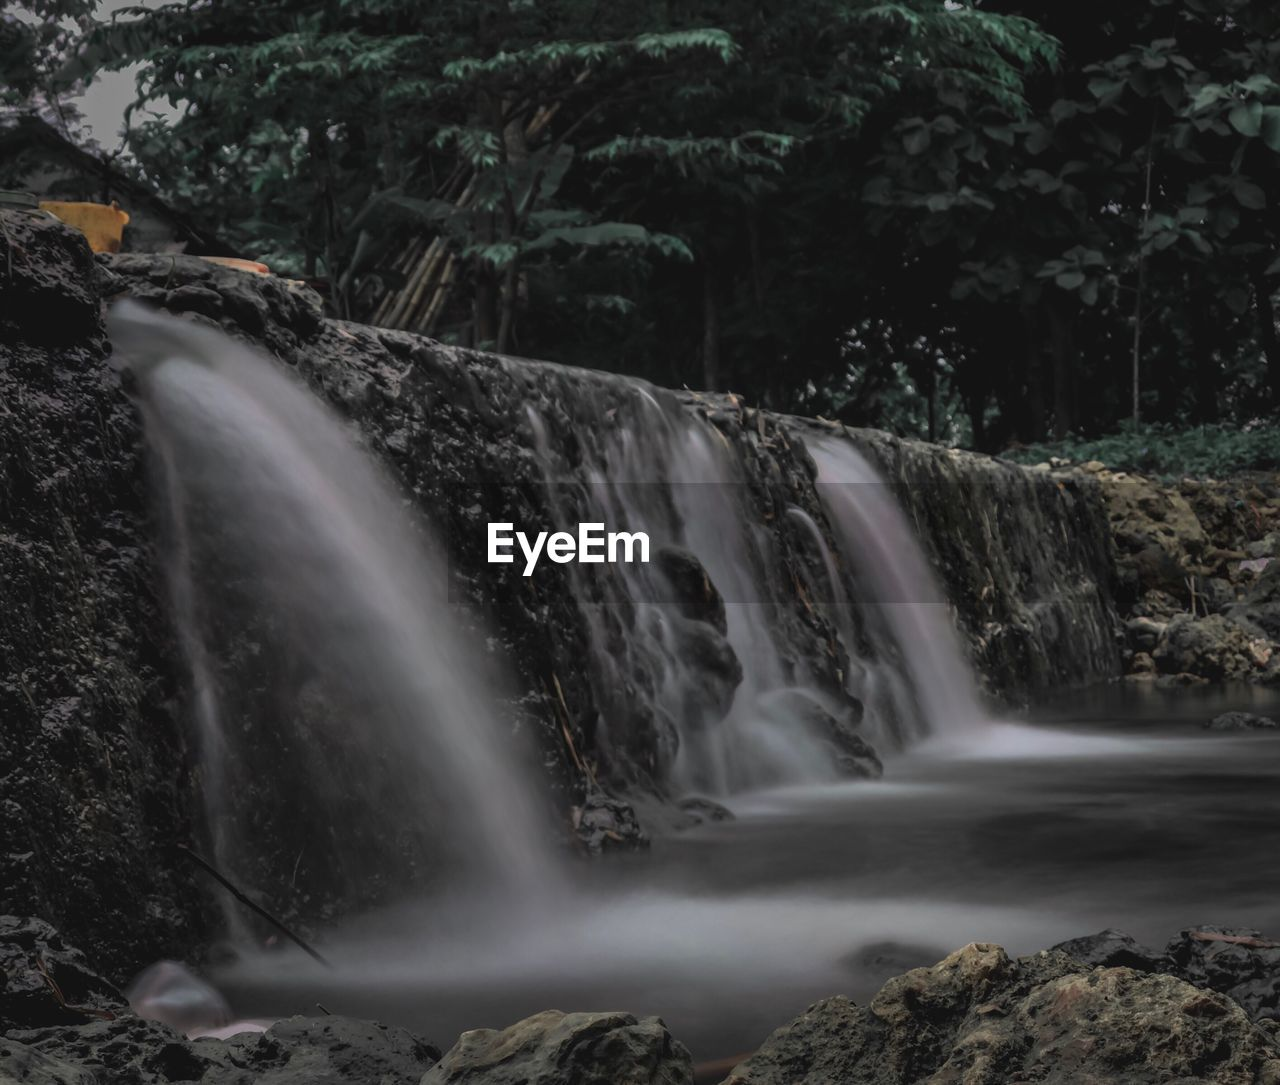 long exposure, waterfall, motion, water, flowing water, blurred motion, scenics - nature, tree, beauty in nature, flowing, forest, nature, rock, plant, no people, environment, power, power in nature, land, outdoors, falling water, rainforest, running water